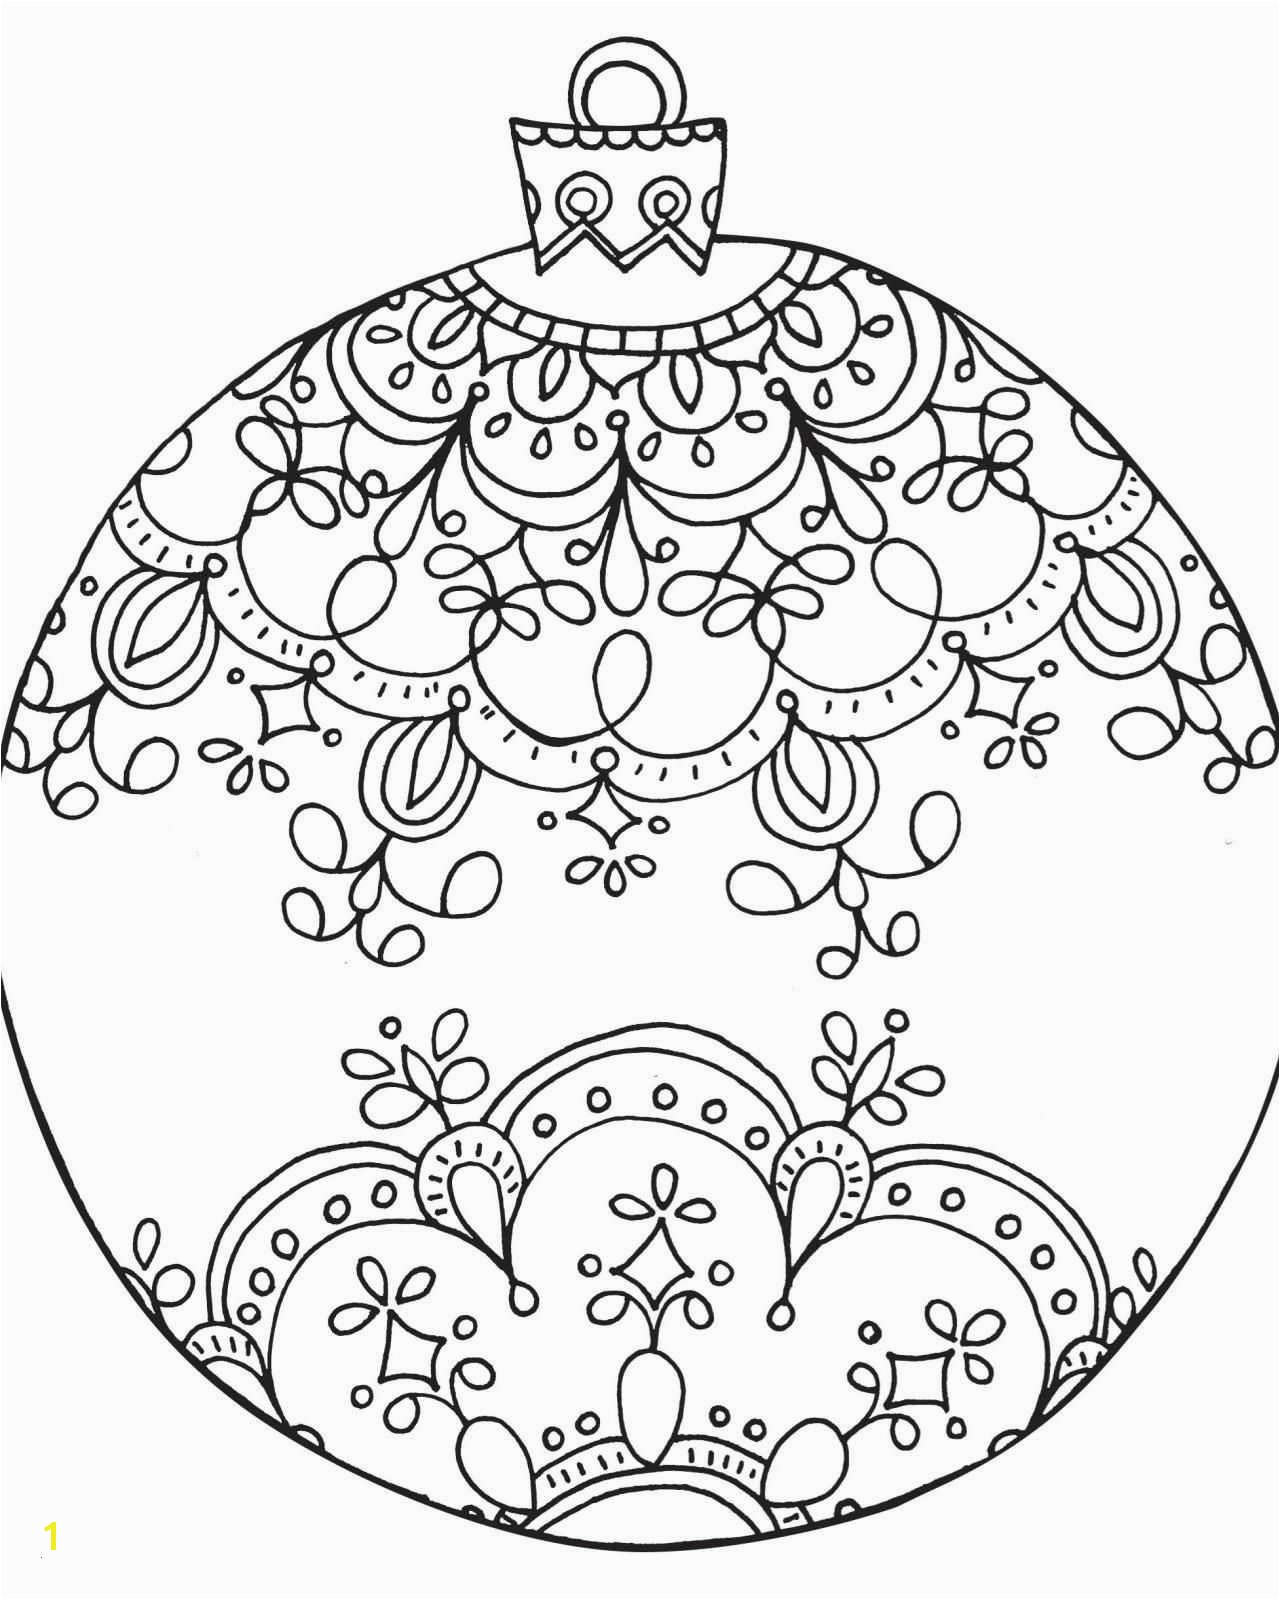 Free Printable Christmas Coloring Sheets Lovely Cool Coloring Pages Printable New Printable Cds 0d Coloring Pages